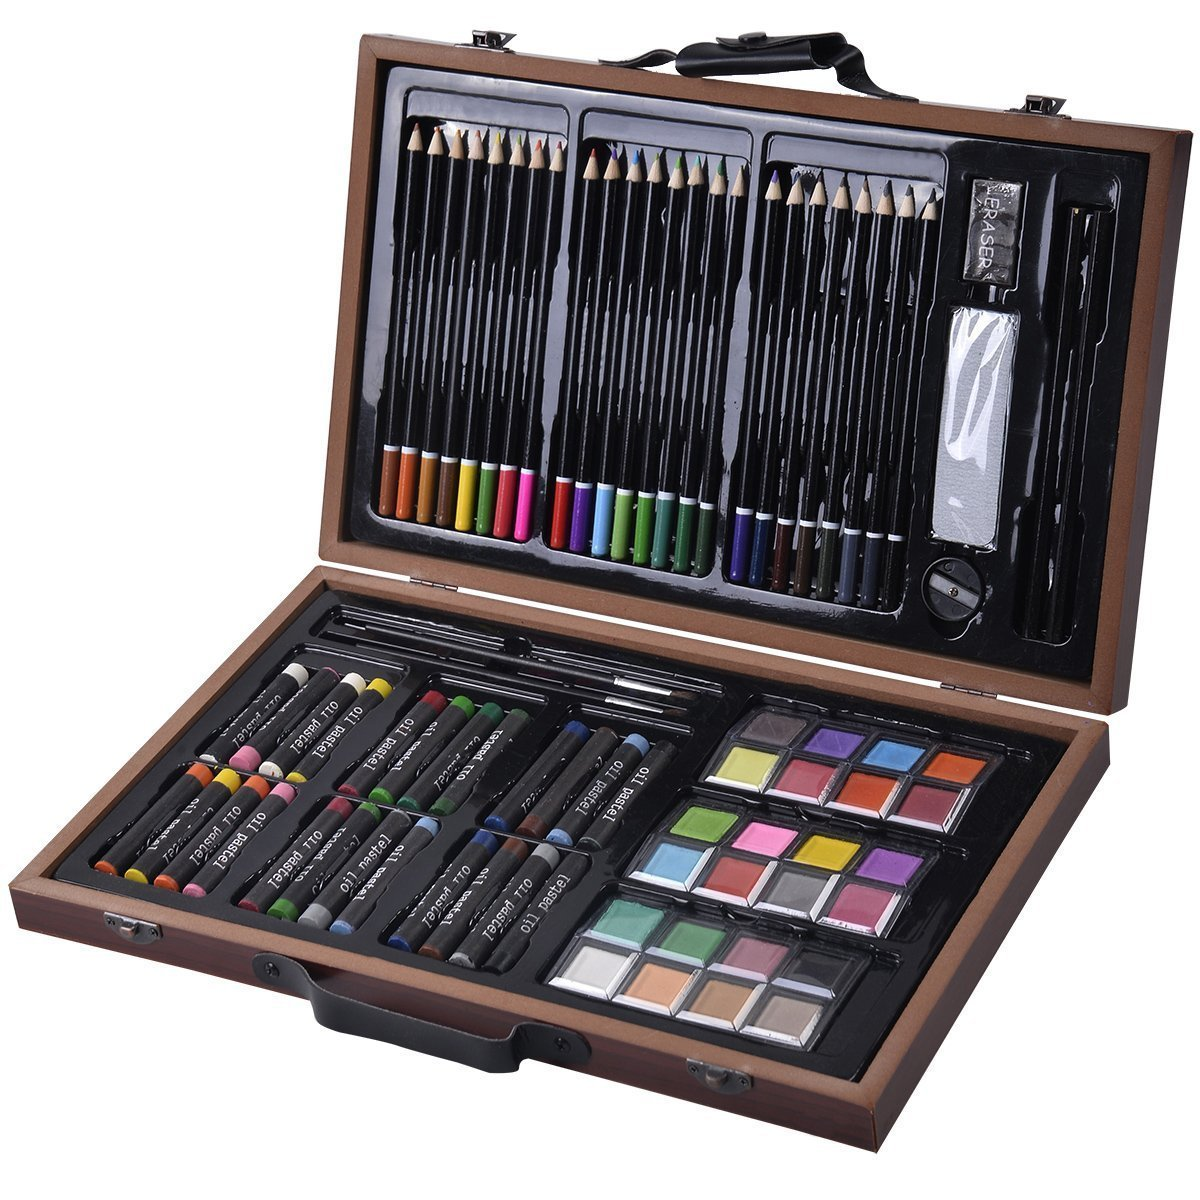 Goplus 80-piece Deluxe Art Set Drawing and Painting w/ Wood Case & Accessories